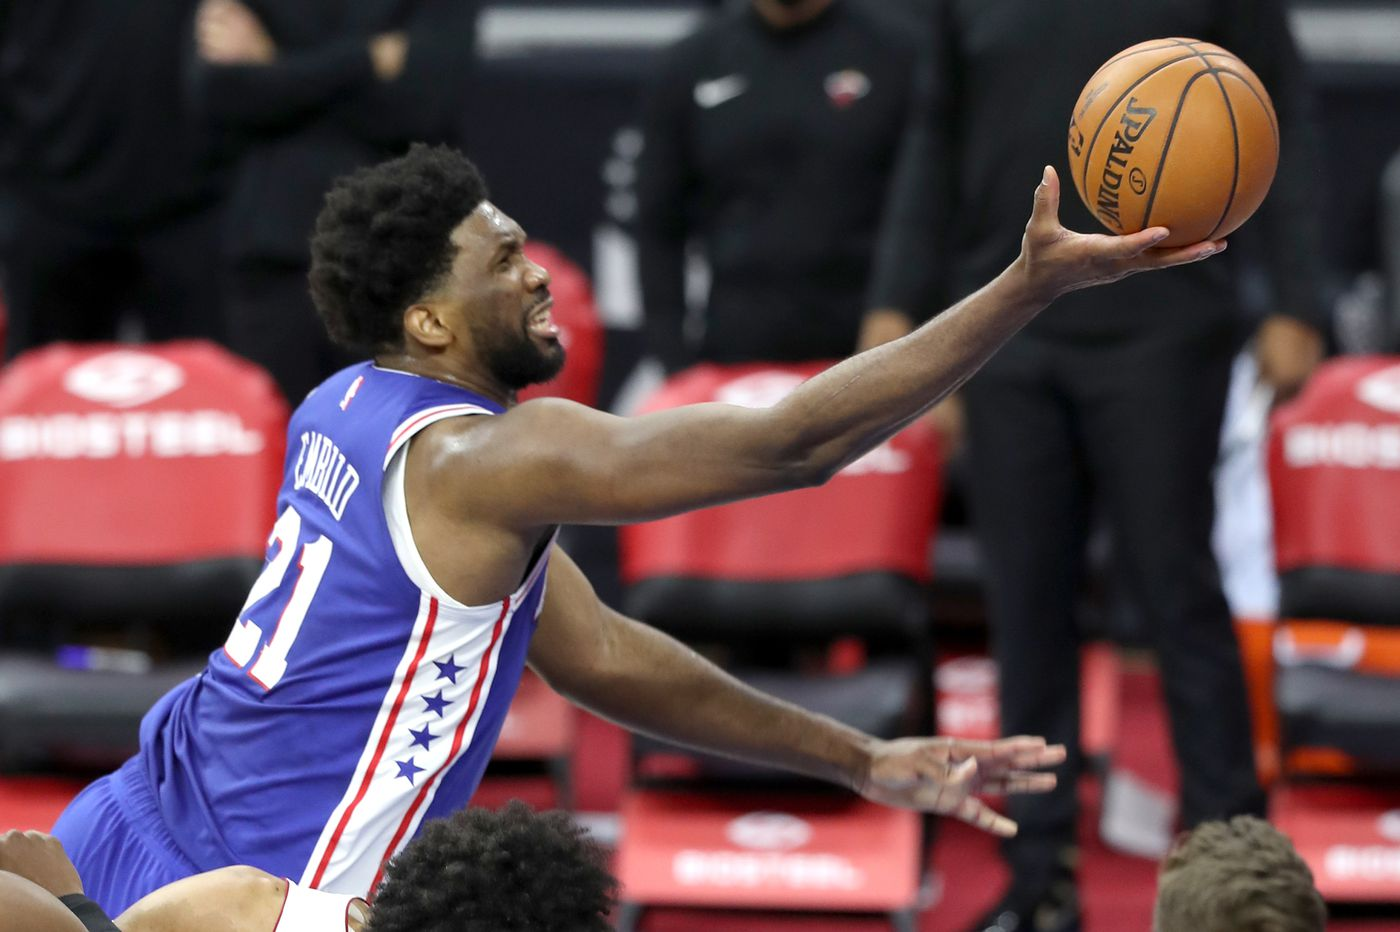 Joel Embiid's 45 points lead Sixers to 137-134 OT victory over Heat